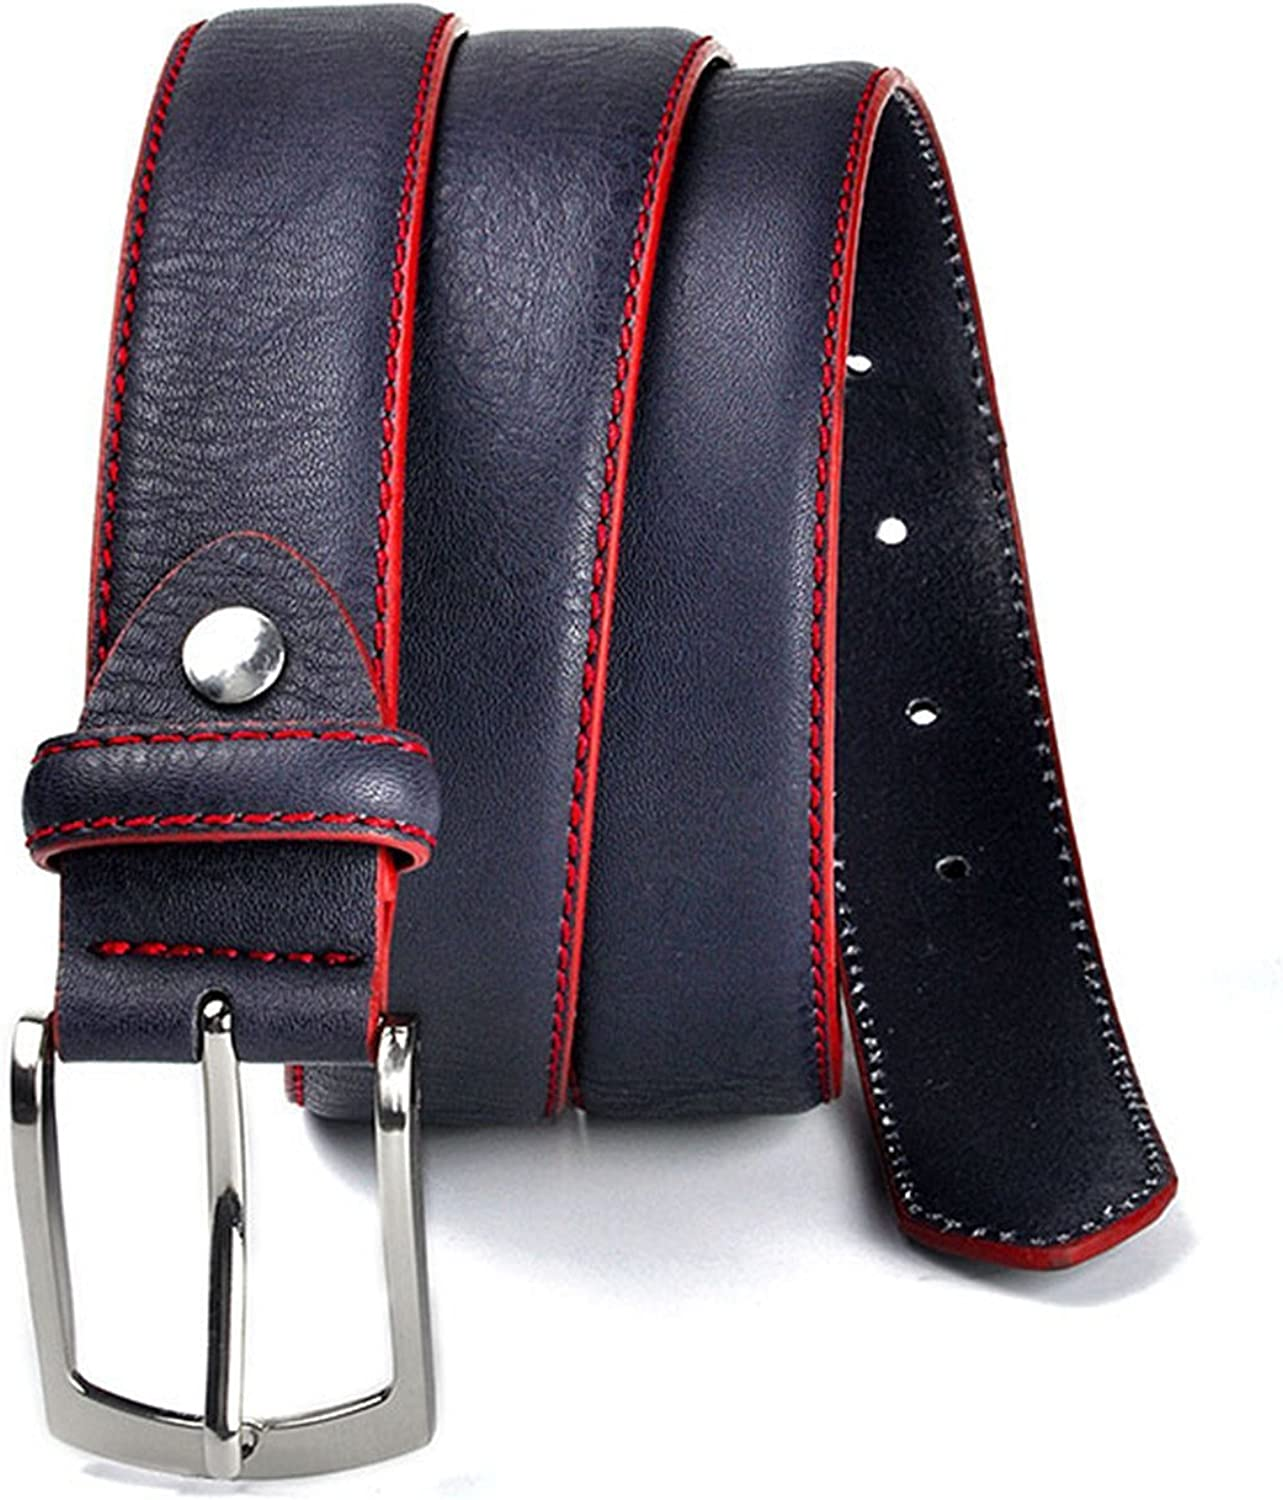 Rising ON?Fashion?Fashion Brand Man Belt Split Leather Belt Casual Mens Leather Belts For Jeans For Man